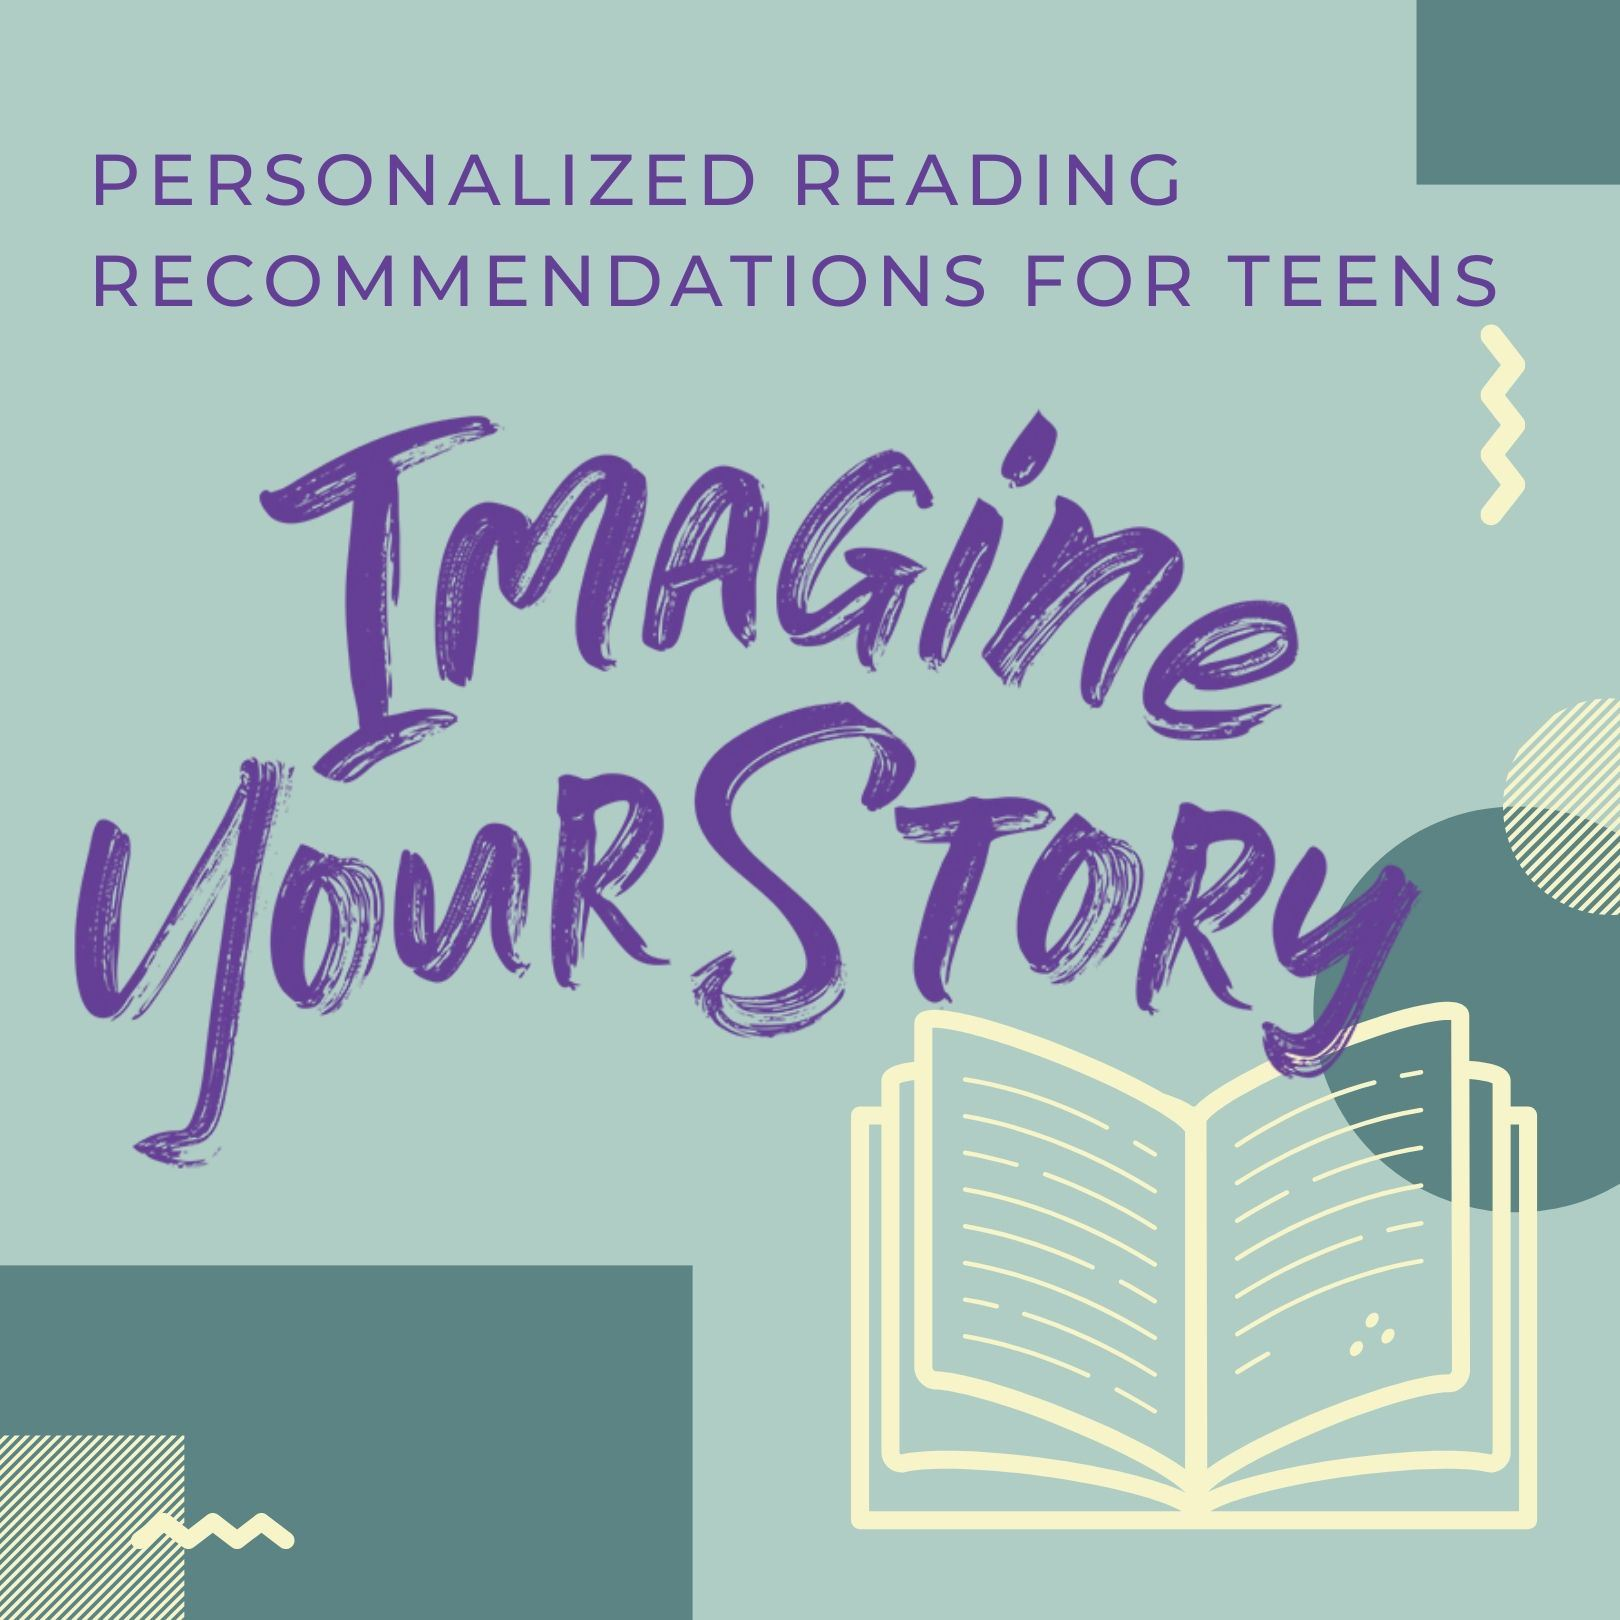 Personalized Reading Recommendations for Teens